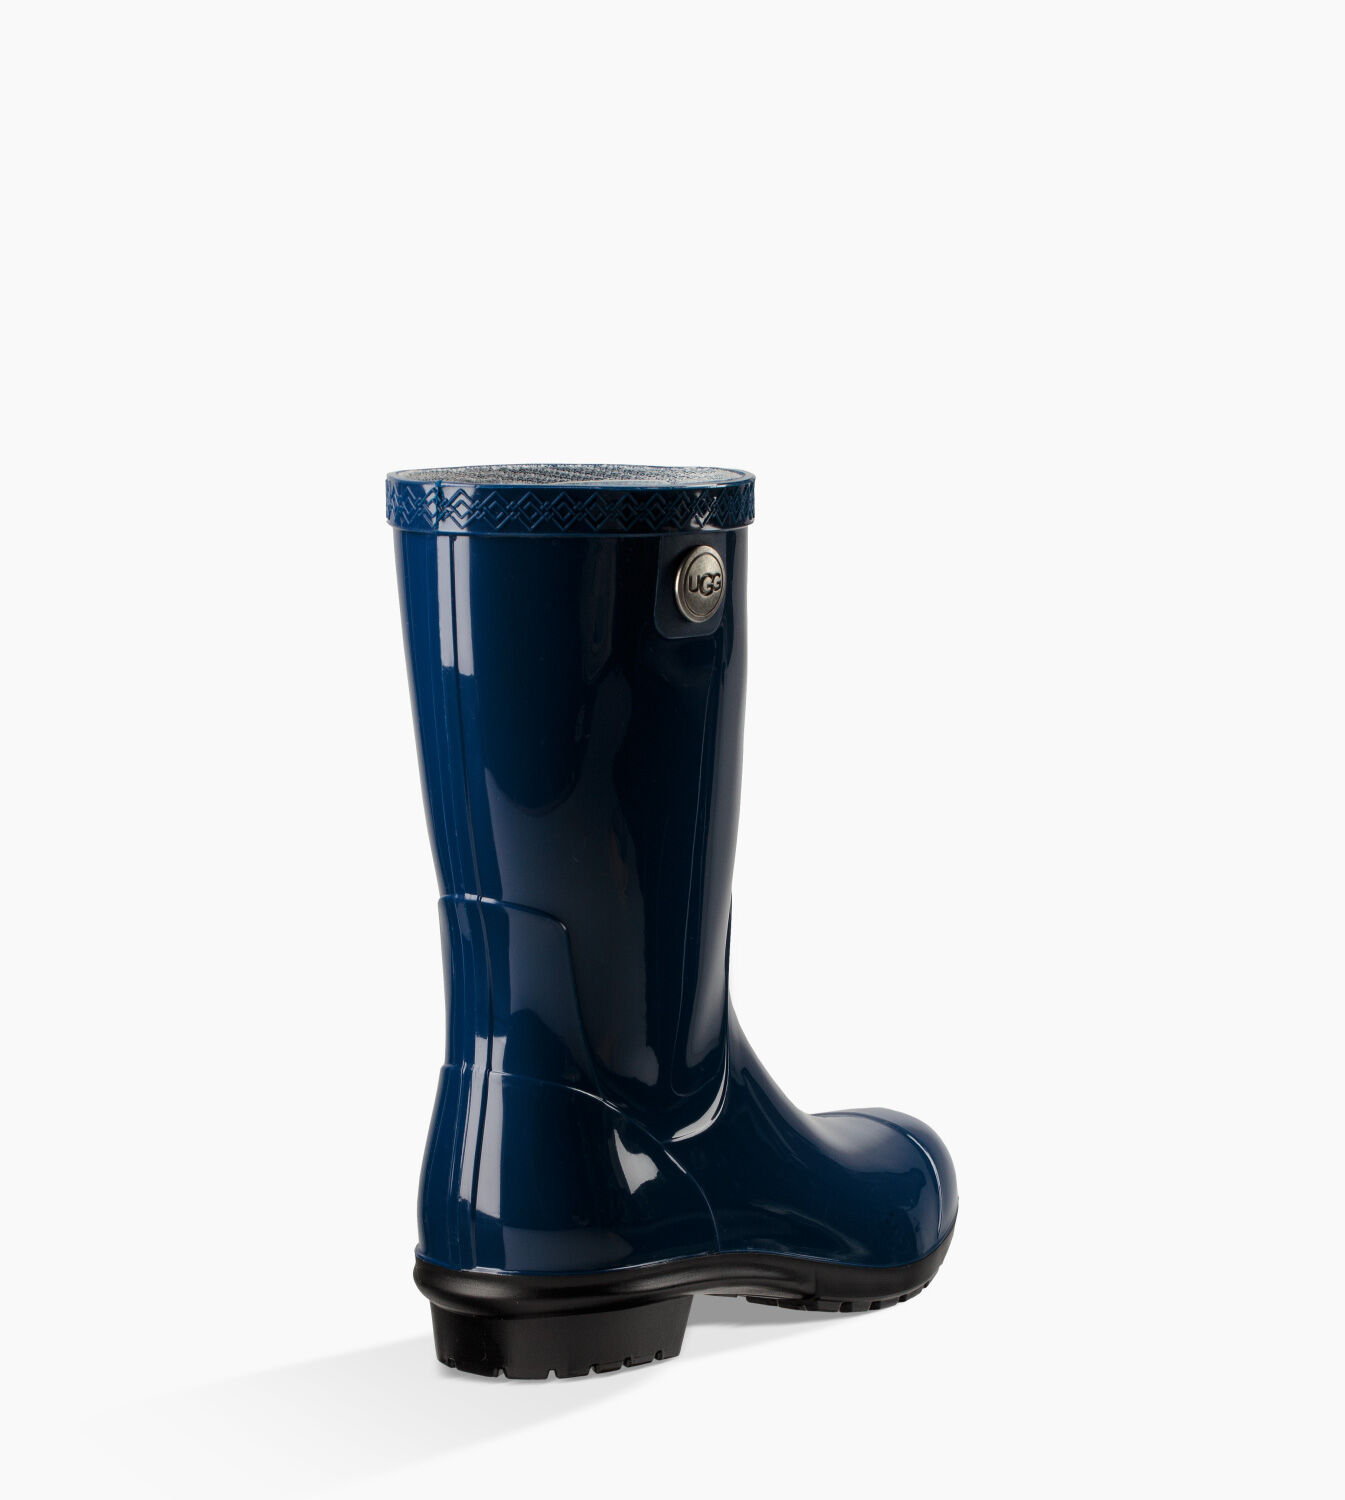 Zoom Sienna Rain Boot - Image 4 of 6